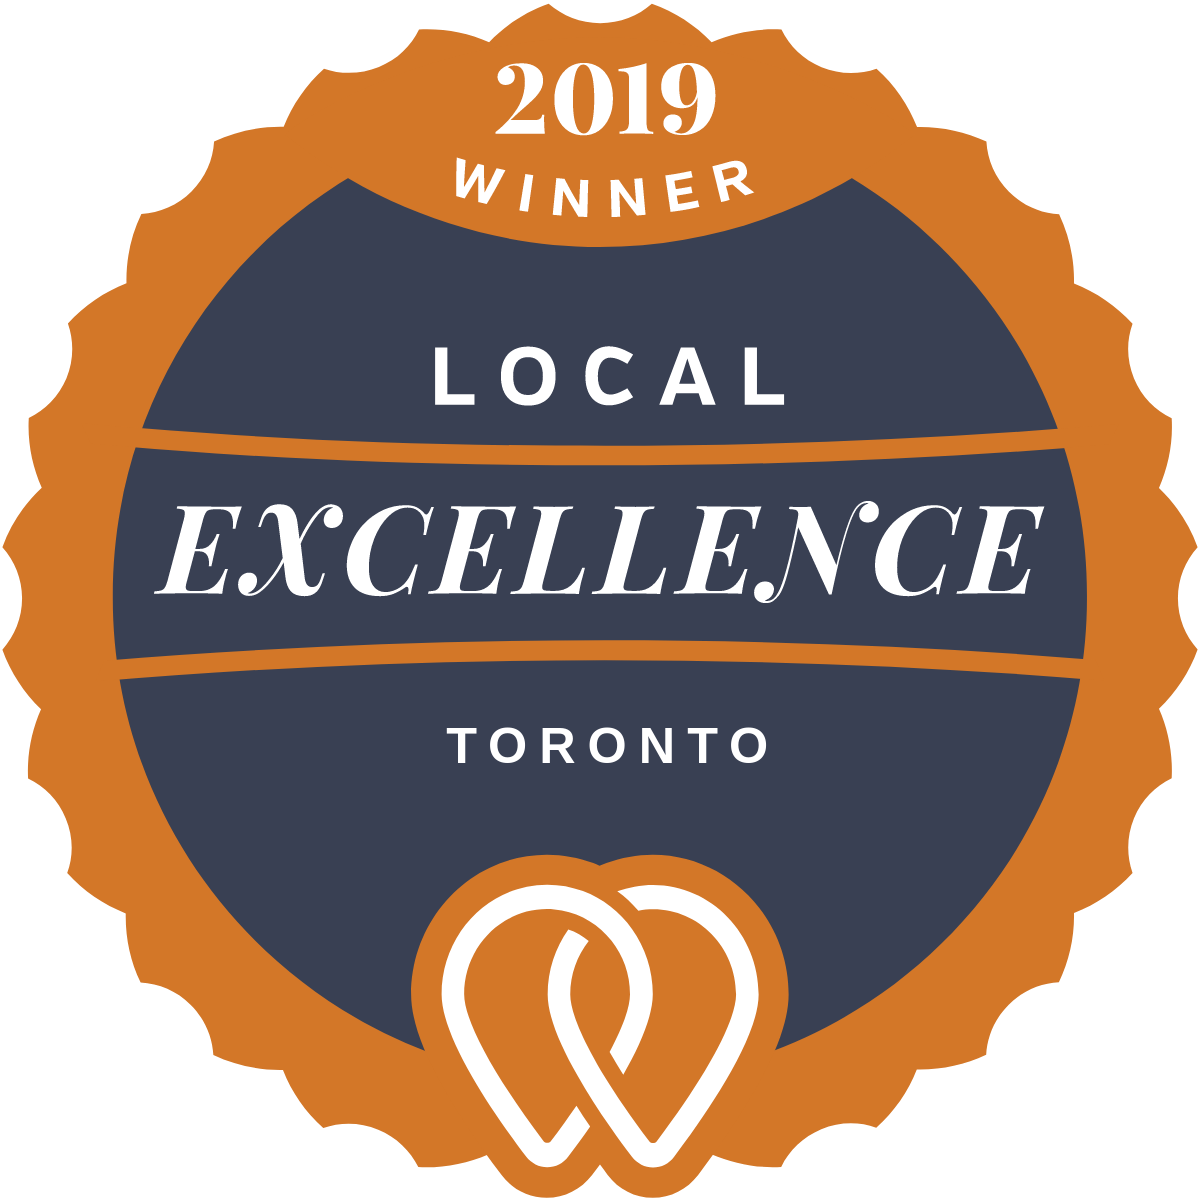 2019 Local Excellence Winner in Toronto, ON